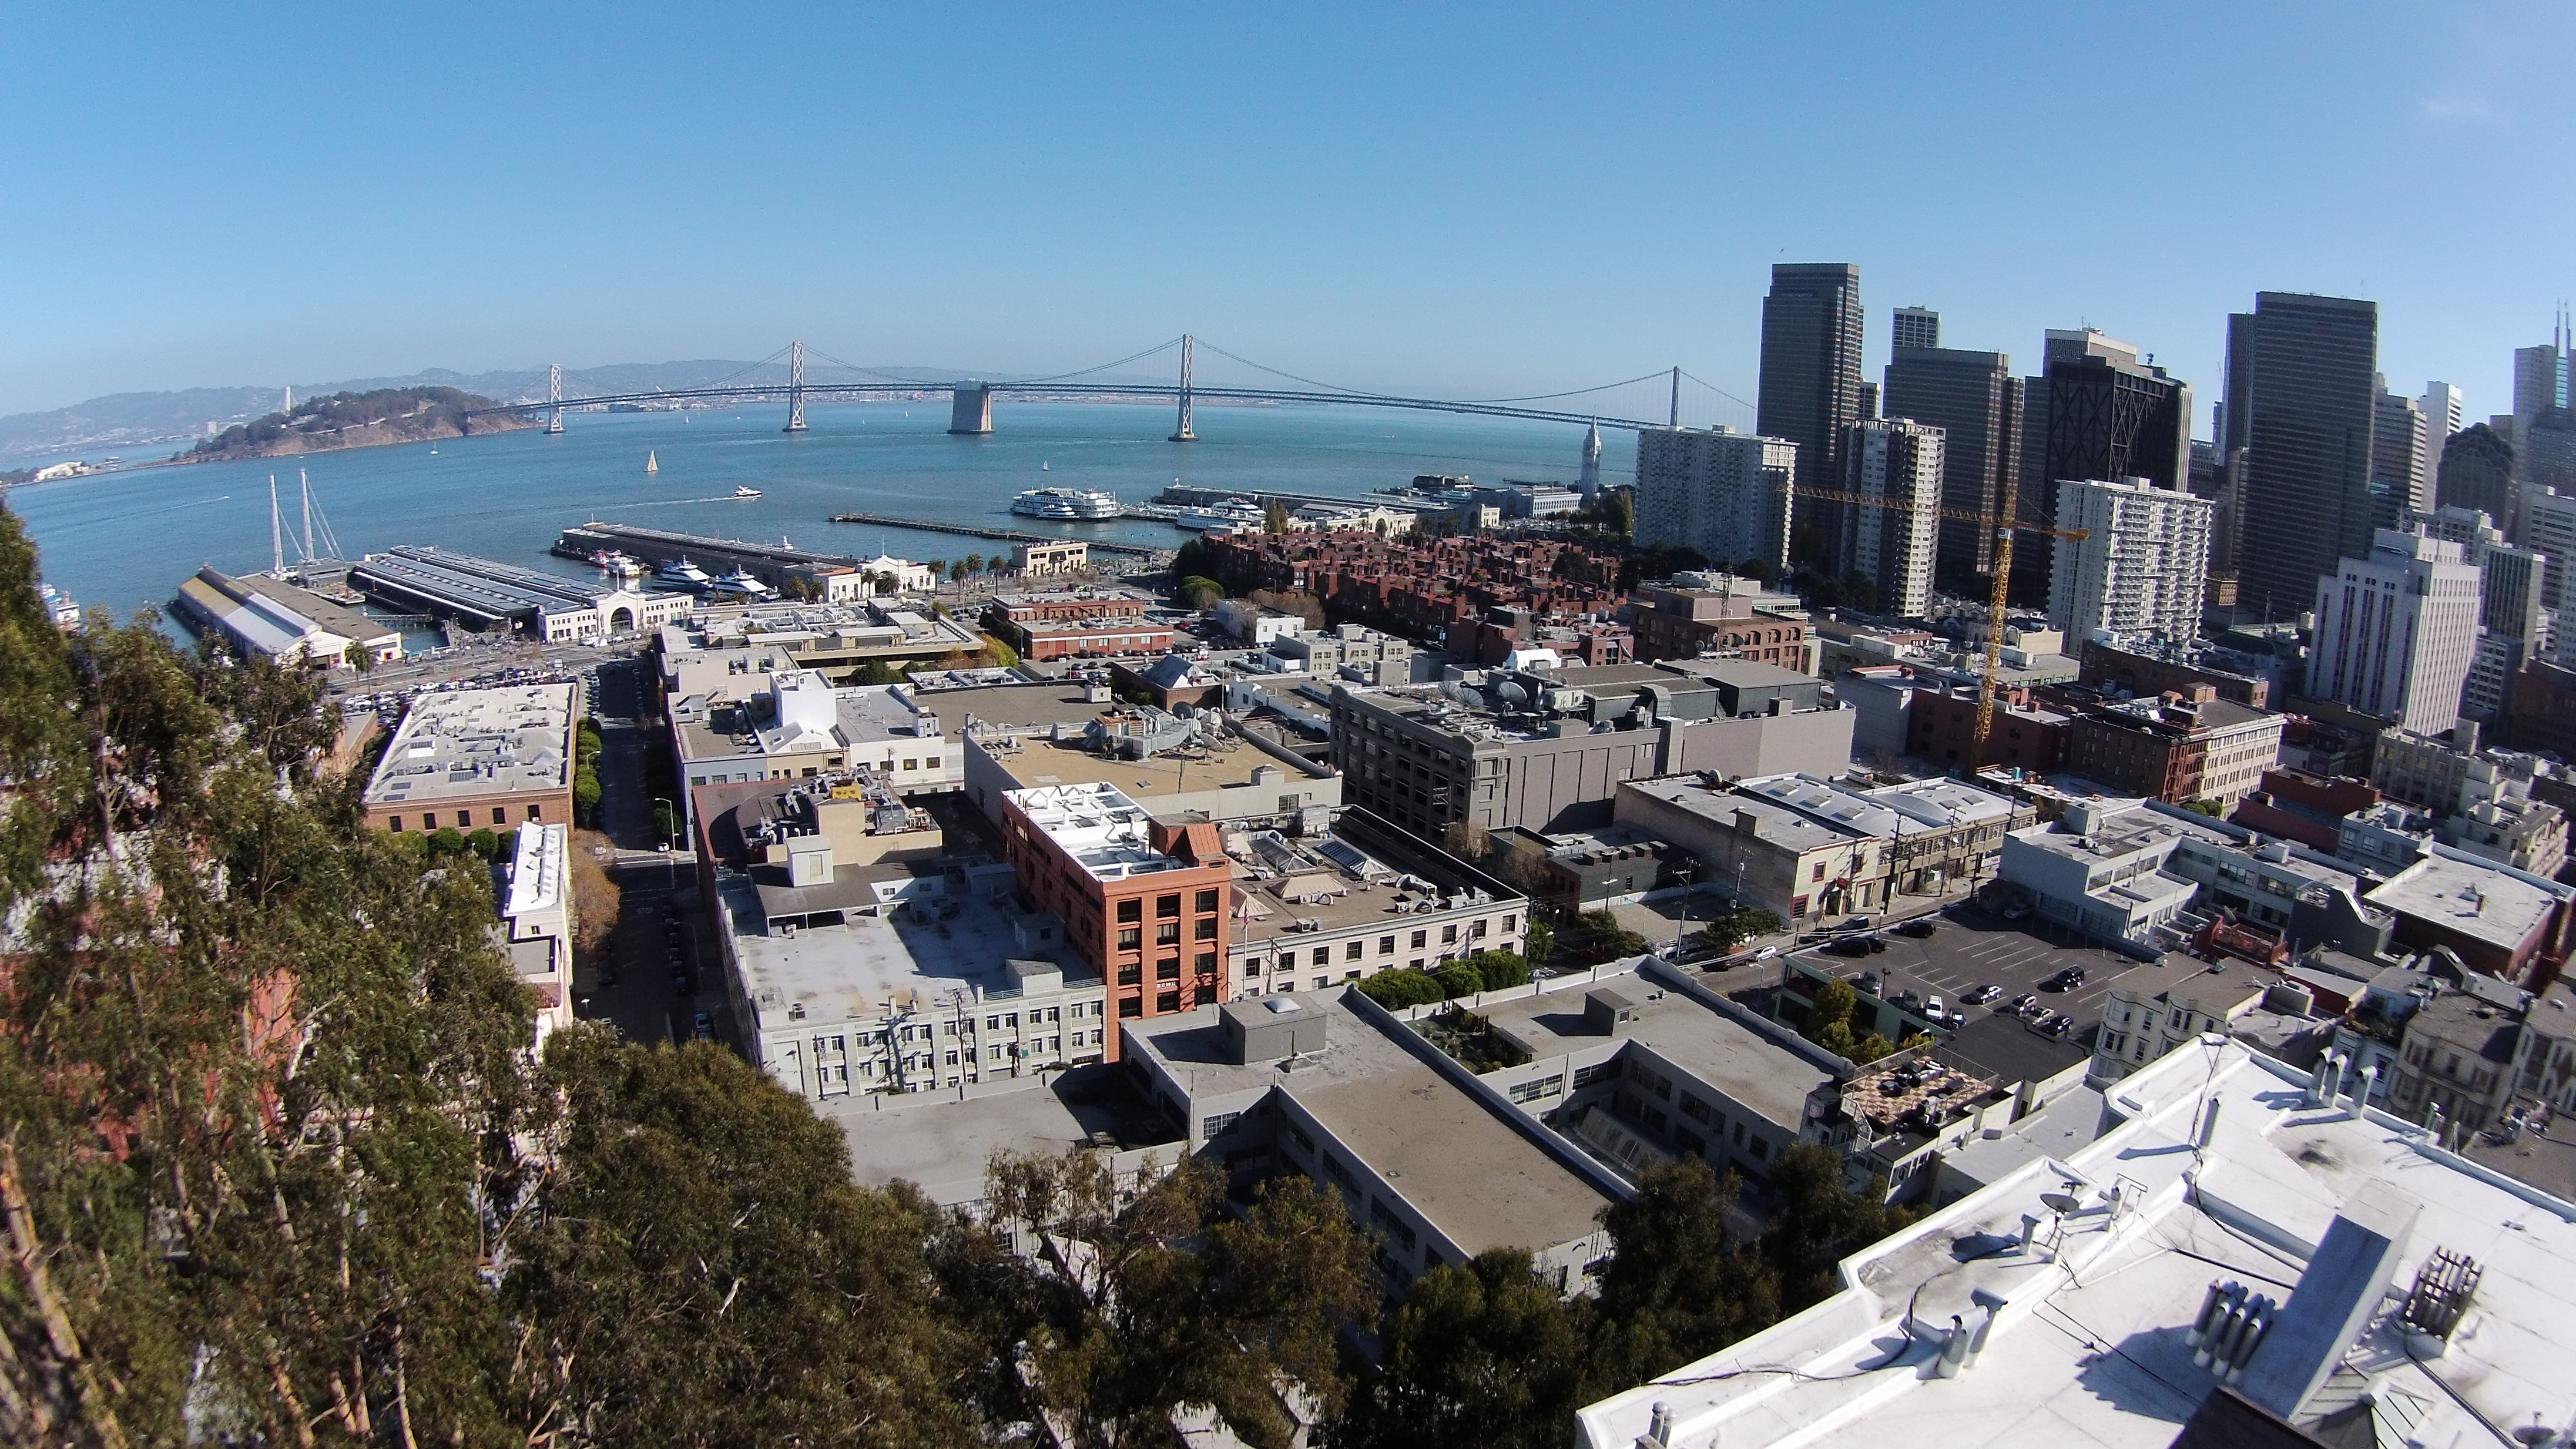 A photo of the Bay Bridge taken with the Phantom 2 Vision above San Francisco's Telegraph Hill. Photo by Signe Brewster